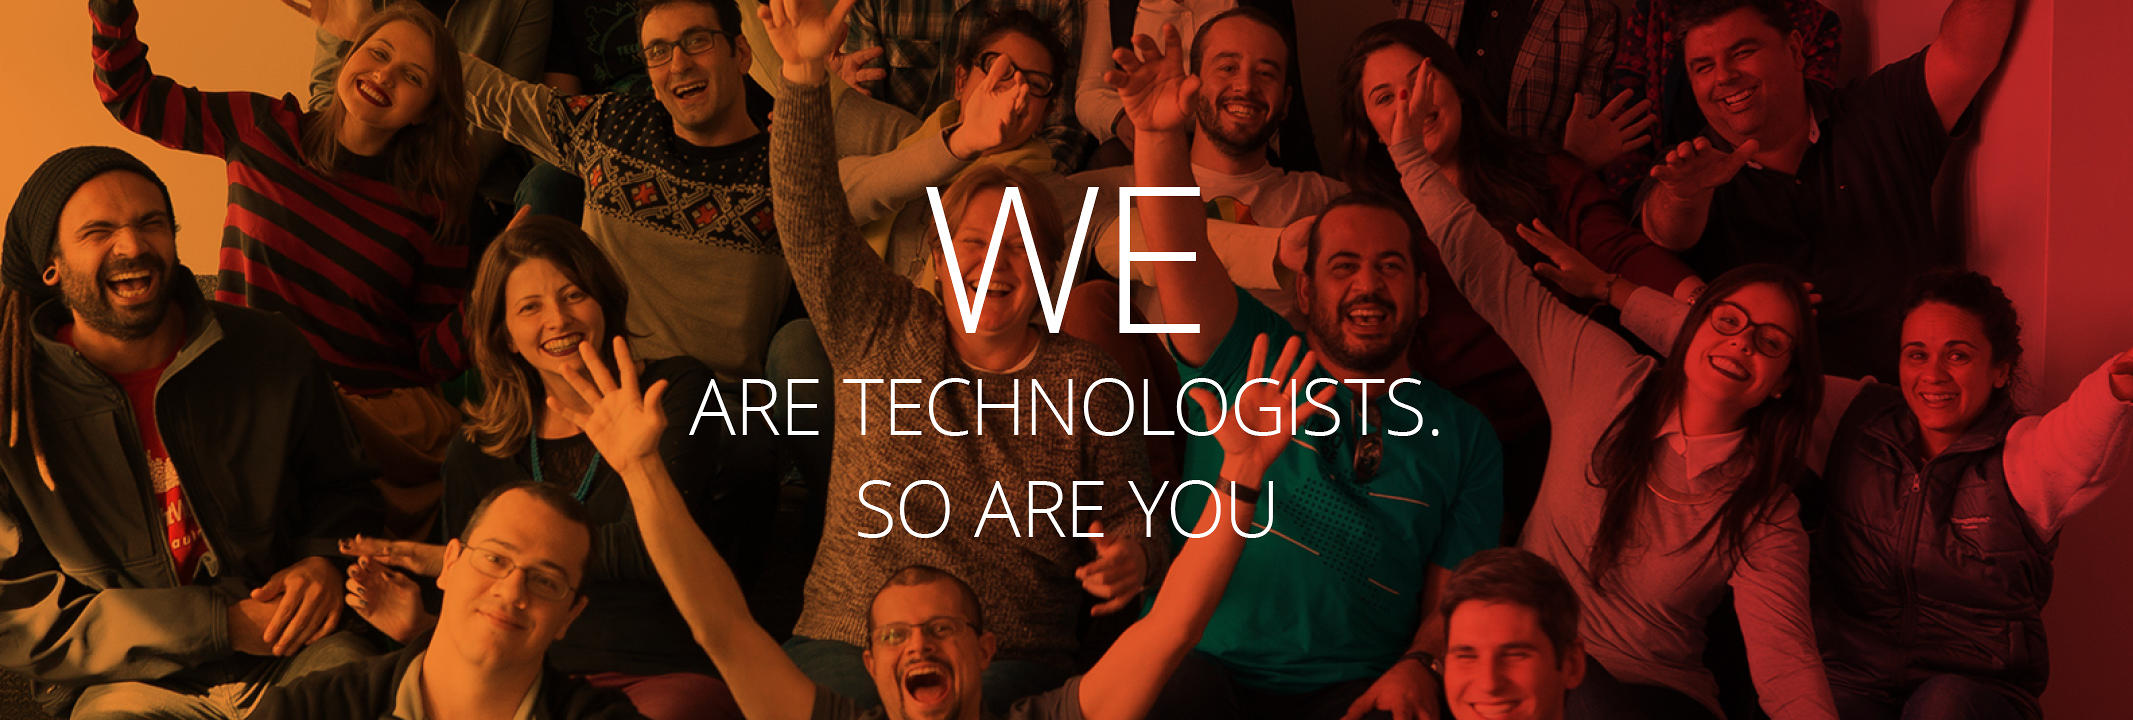 We are Technologists. So are you.